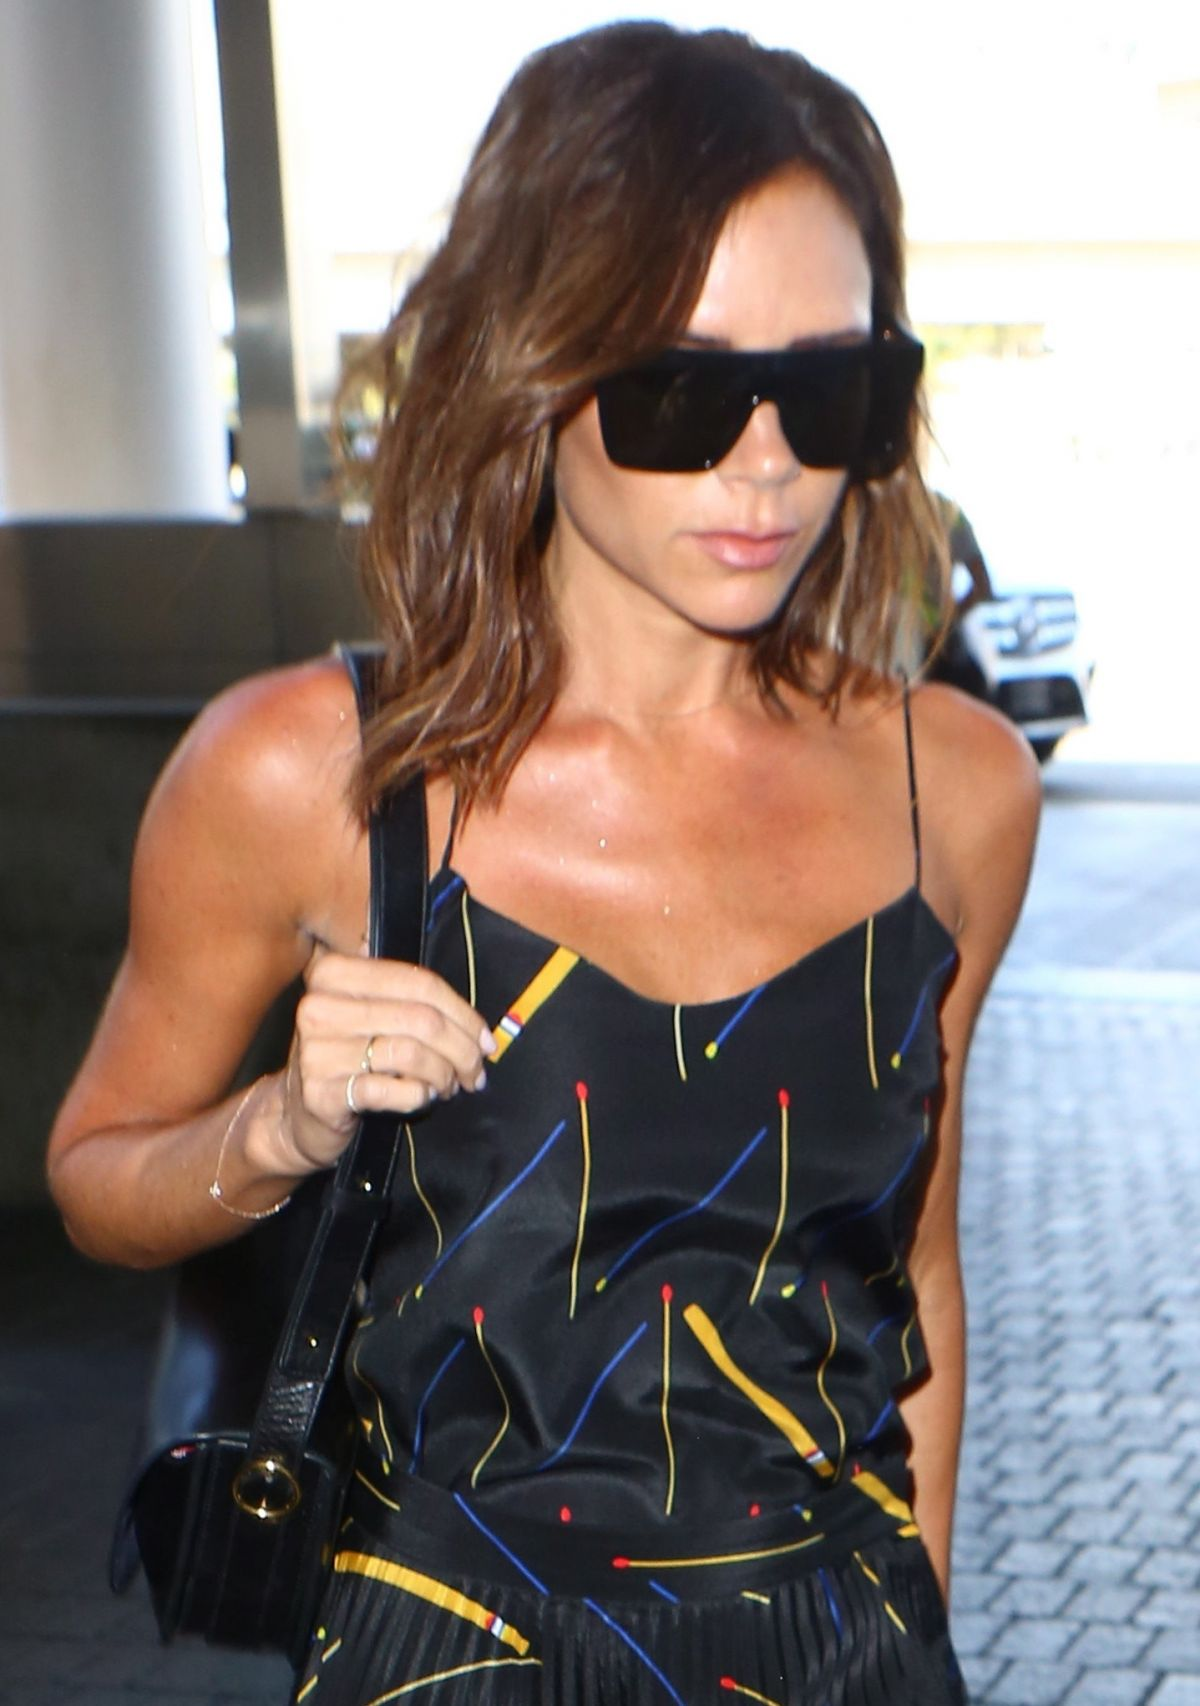 VICTORIA BECKHAM at LAX Airport in Los Angeles 07/31/2016